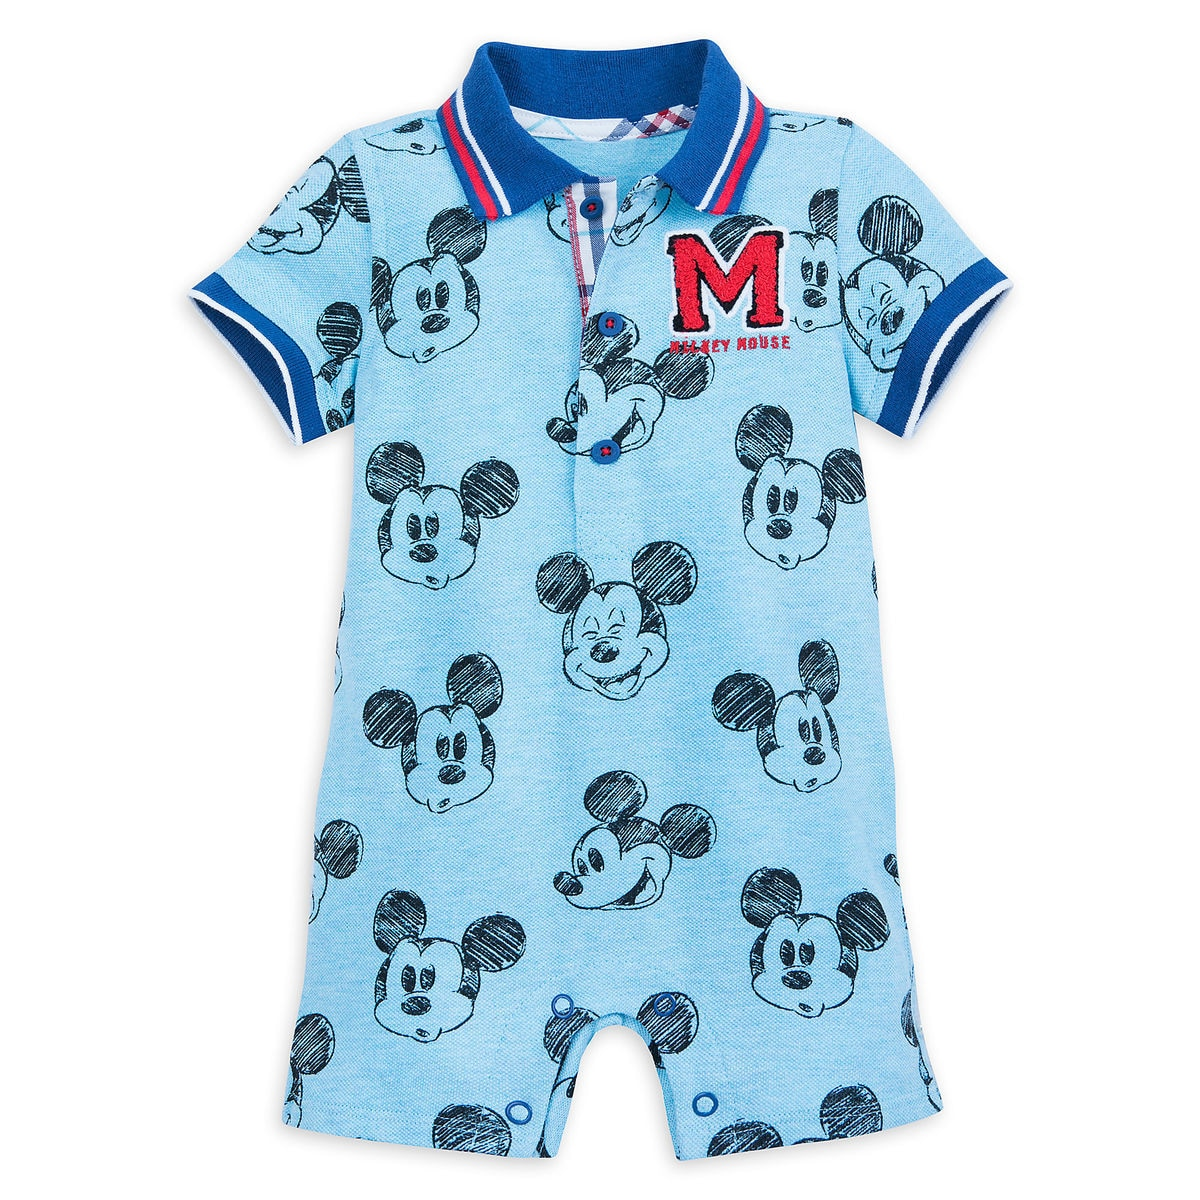 Product Image of Mickey Mouse Sketch Romper for Baby   1 89c31bbb379a